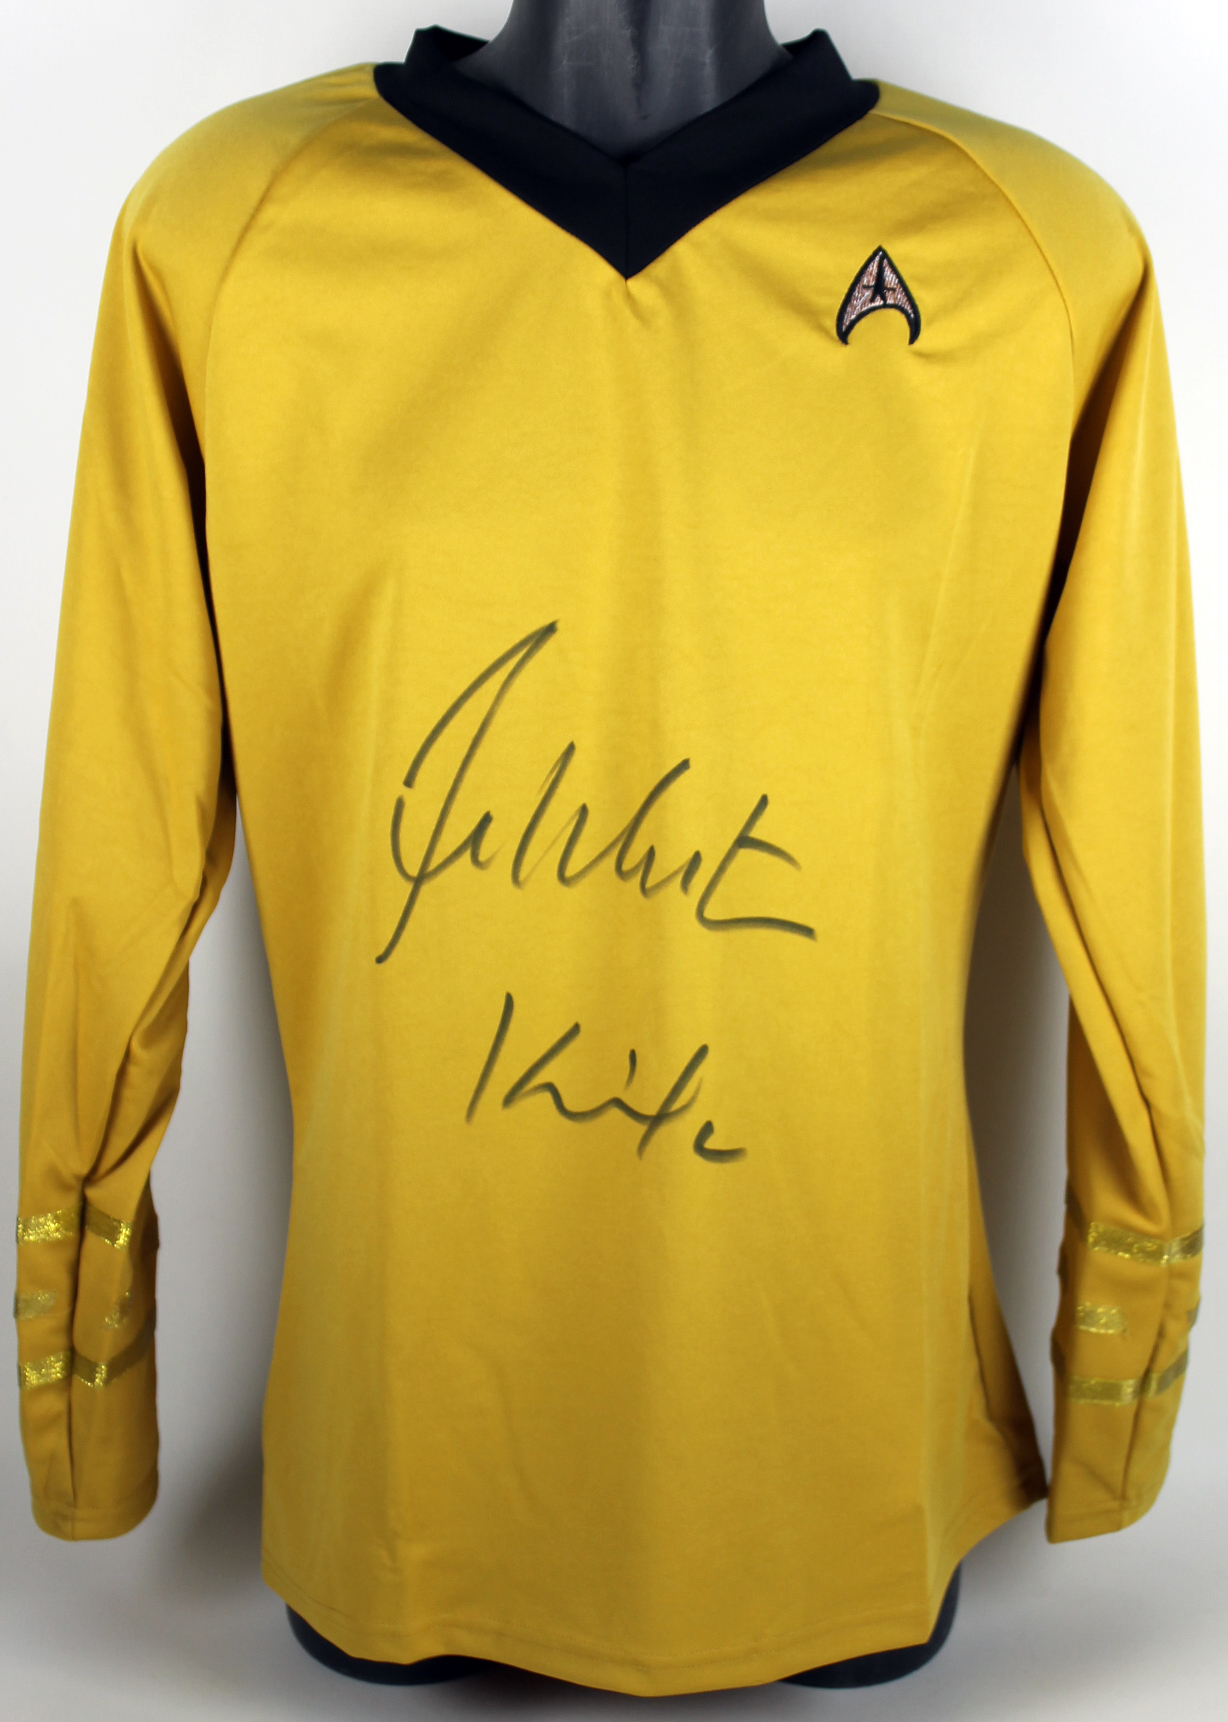 "William Shatner Star Trek ""Kirk"" Authentic Signed Uniform Shirt BAS #B91379"